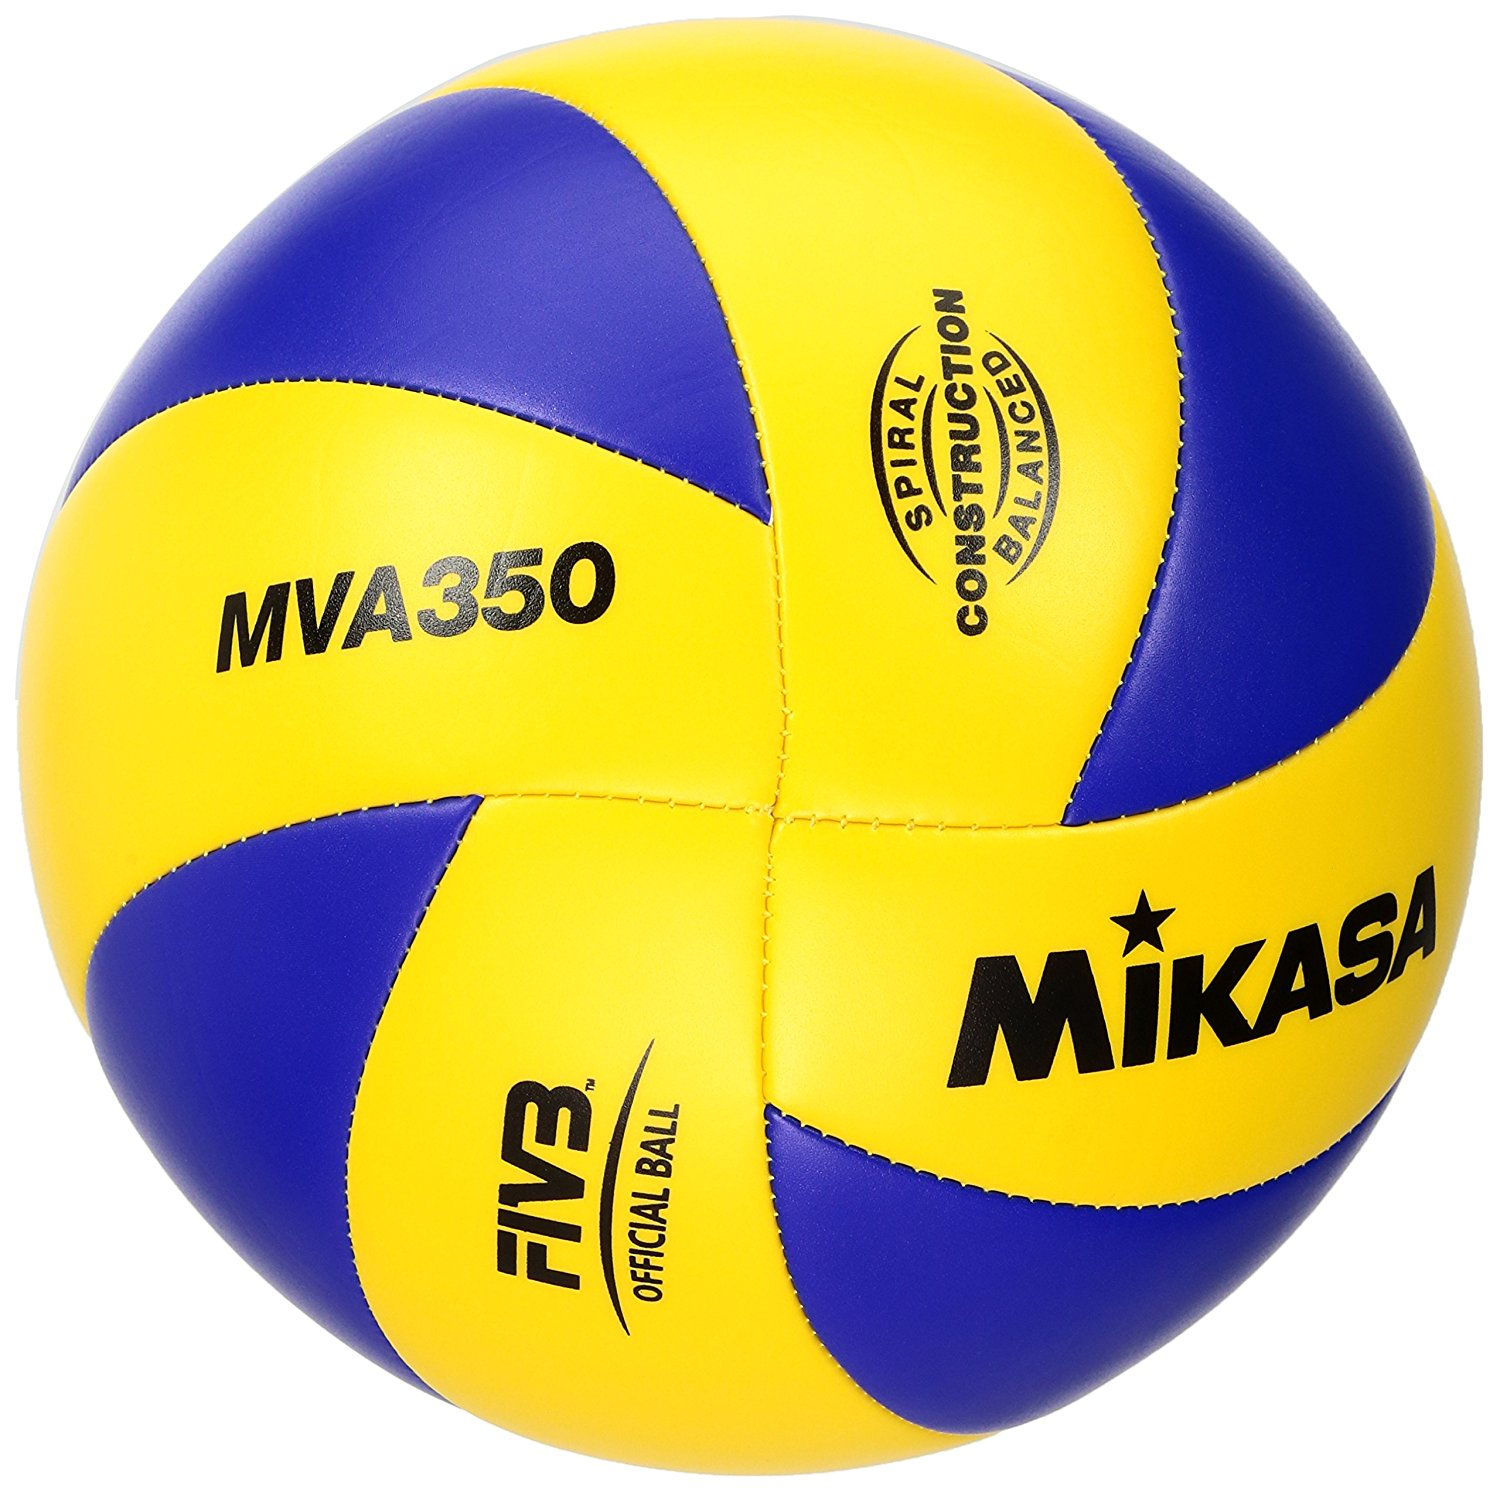 Mikasa MVA350 Indoor and Outdoor Olympic Replica Volleyball, Ball Futsal American 2012 Micro Basketball FIVB UltraTack and by NoSting 3Pack Outdoor Rubber.., By Mikasa Sports